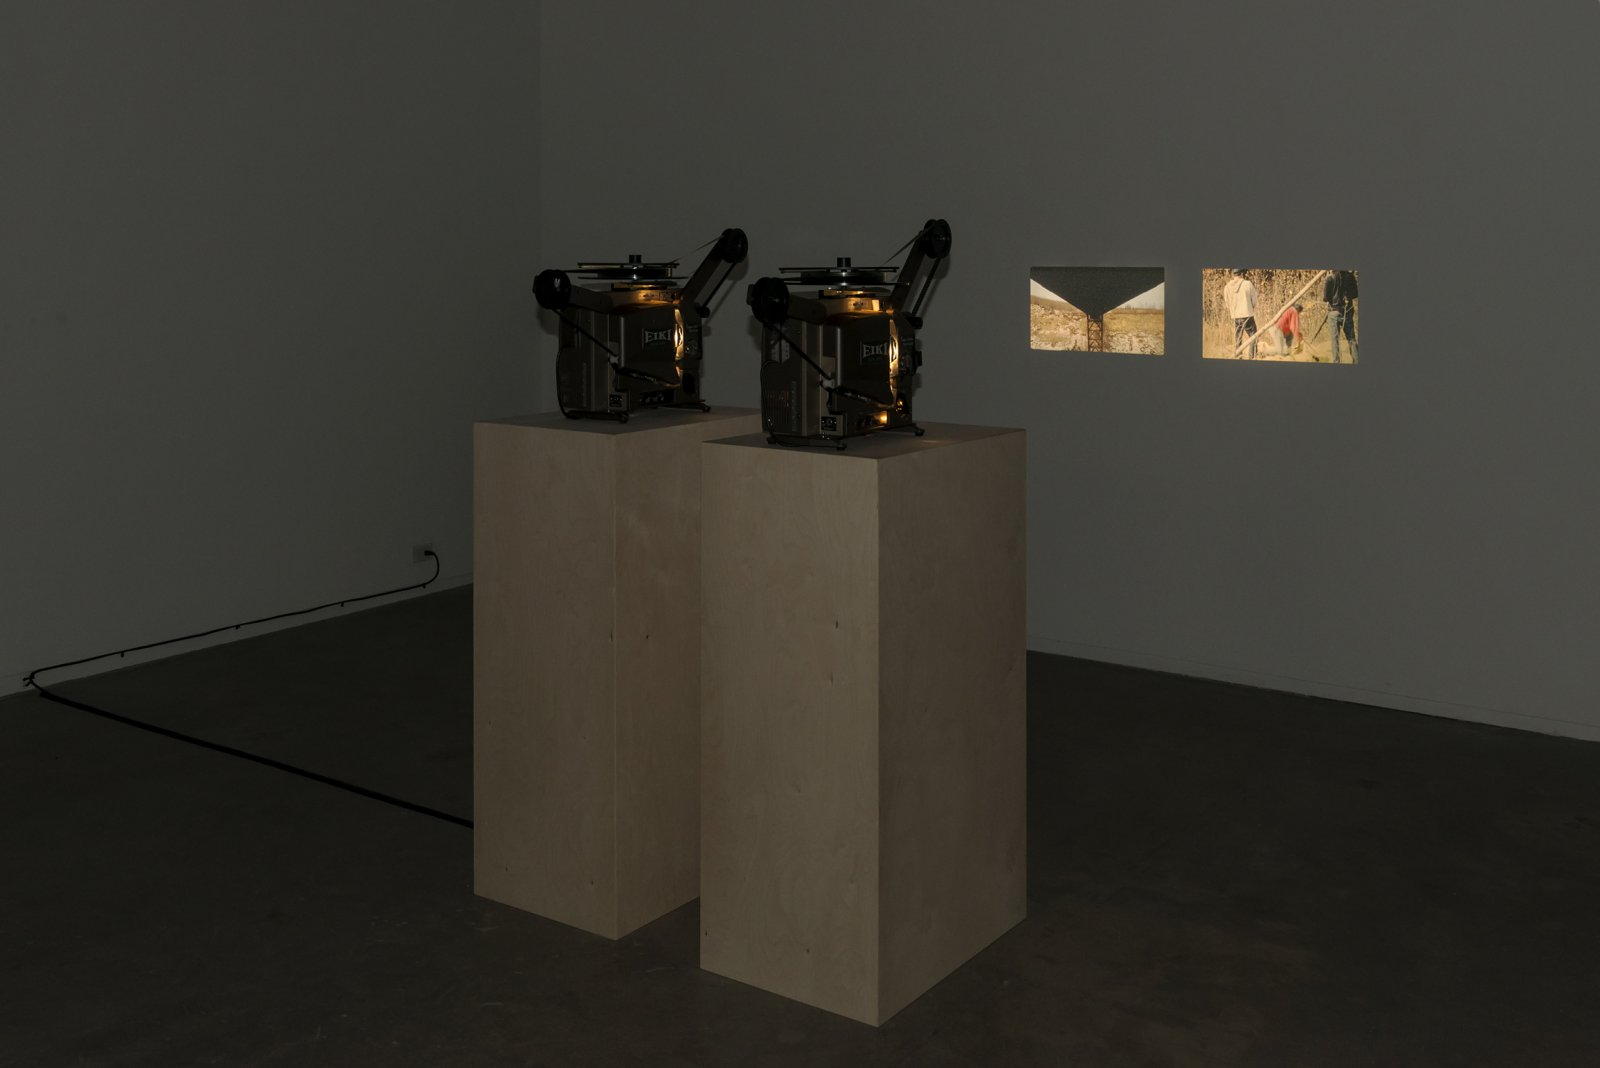 Brian Jungen and Duane Linklater, Lean, 2012, two super 16 mm film loops on projectors, 10 minutes